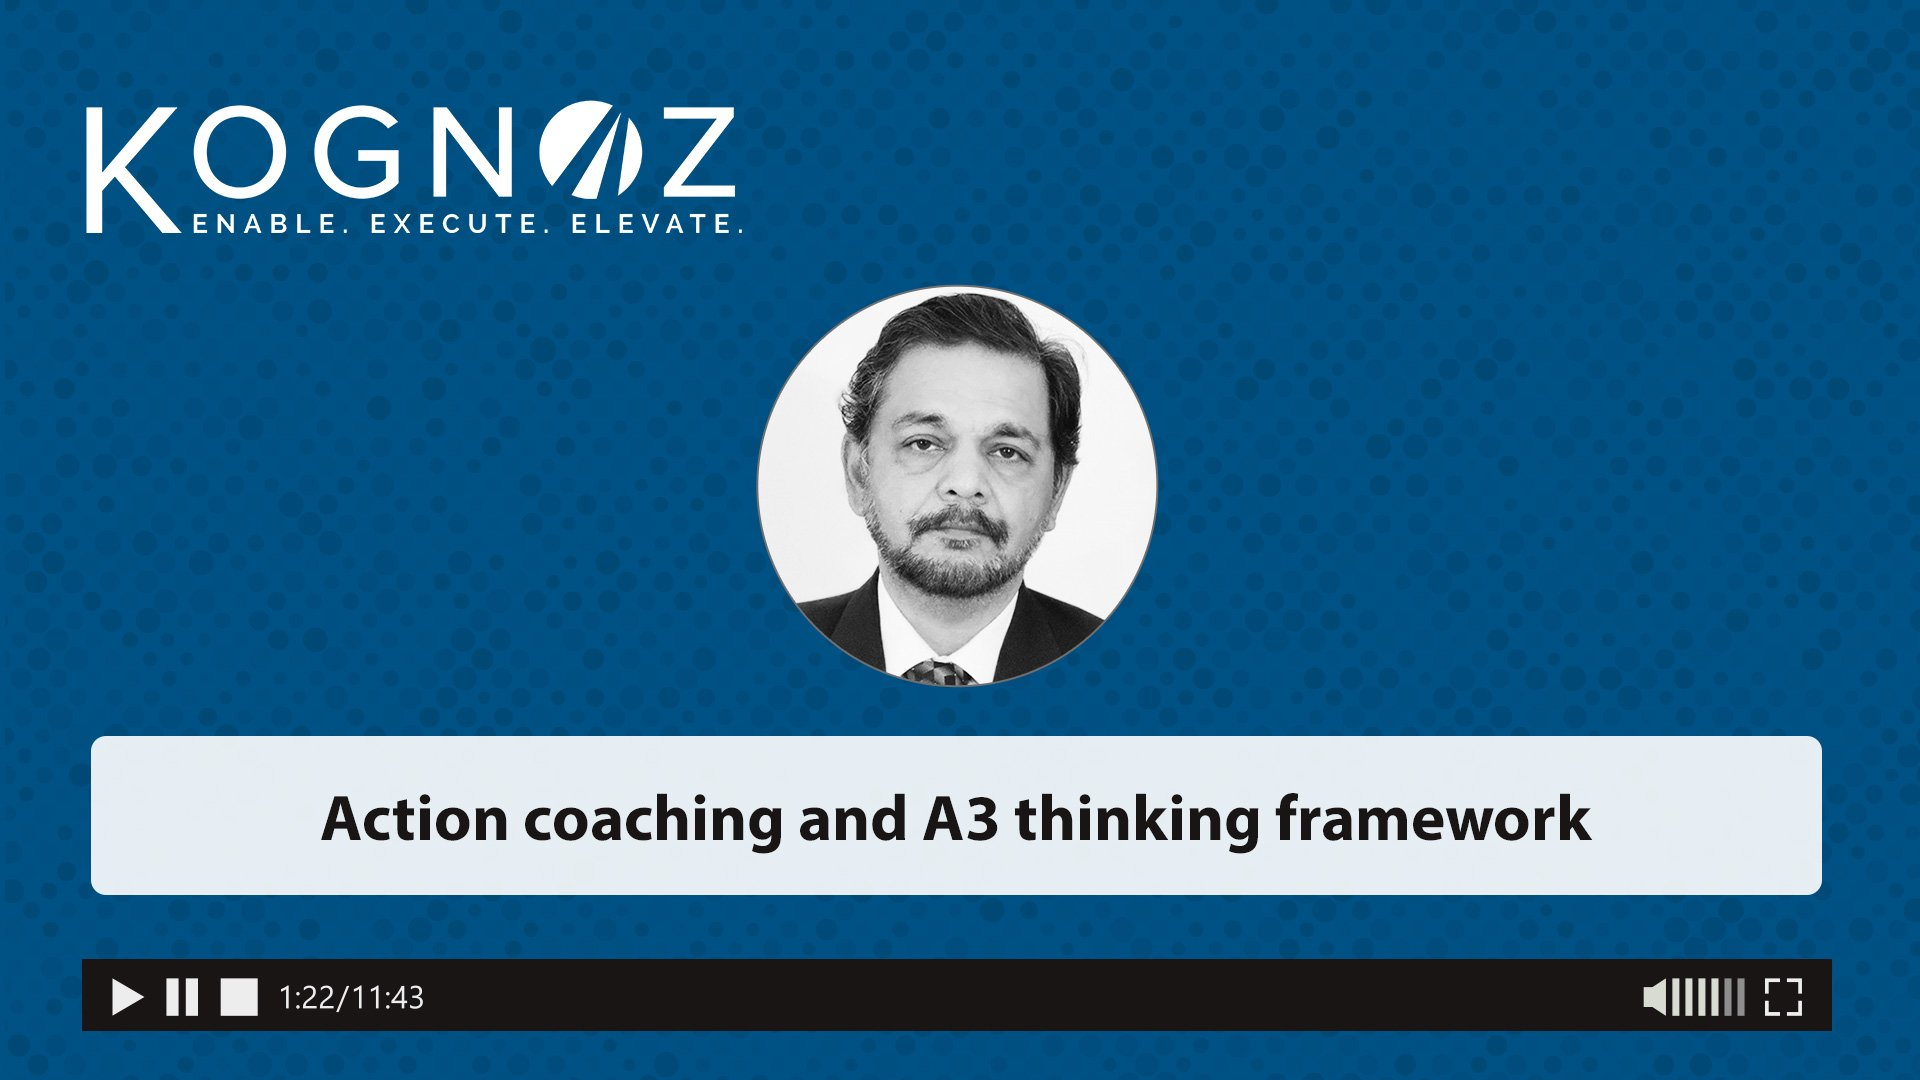 Action-coaching-and-A3-thinking-framework